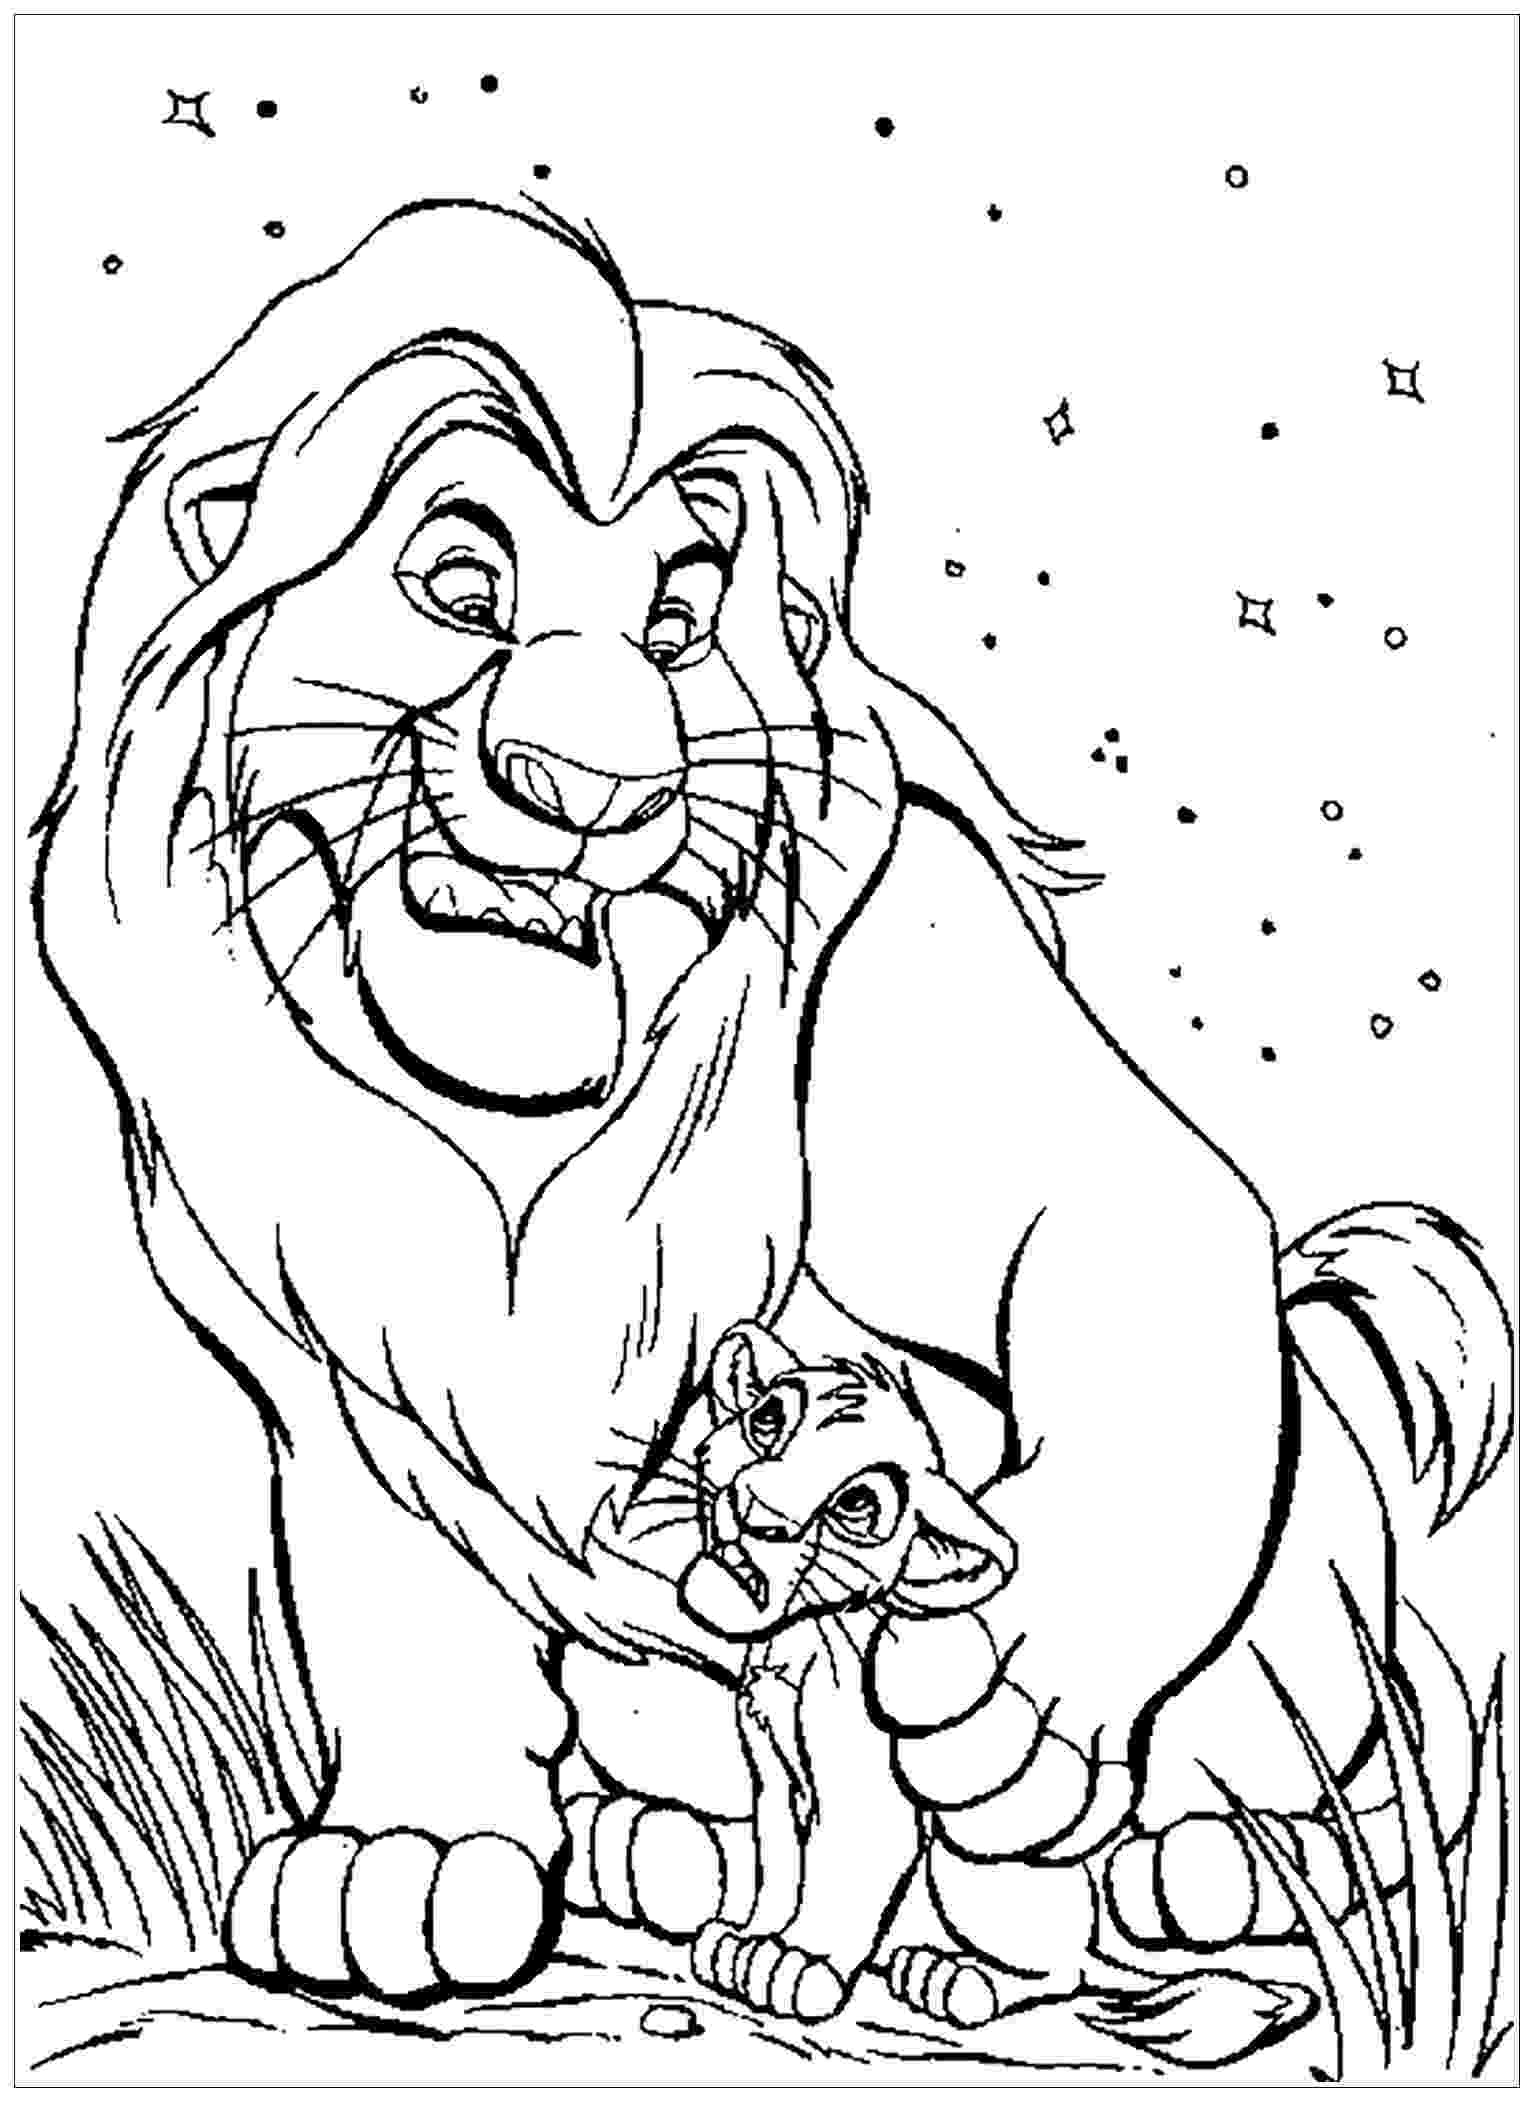 free colouring pages lion king mufasa with simba the lion king kids coloring pages colouring lion free king pages